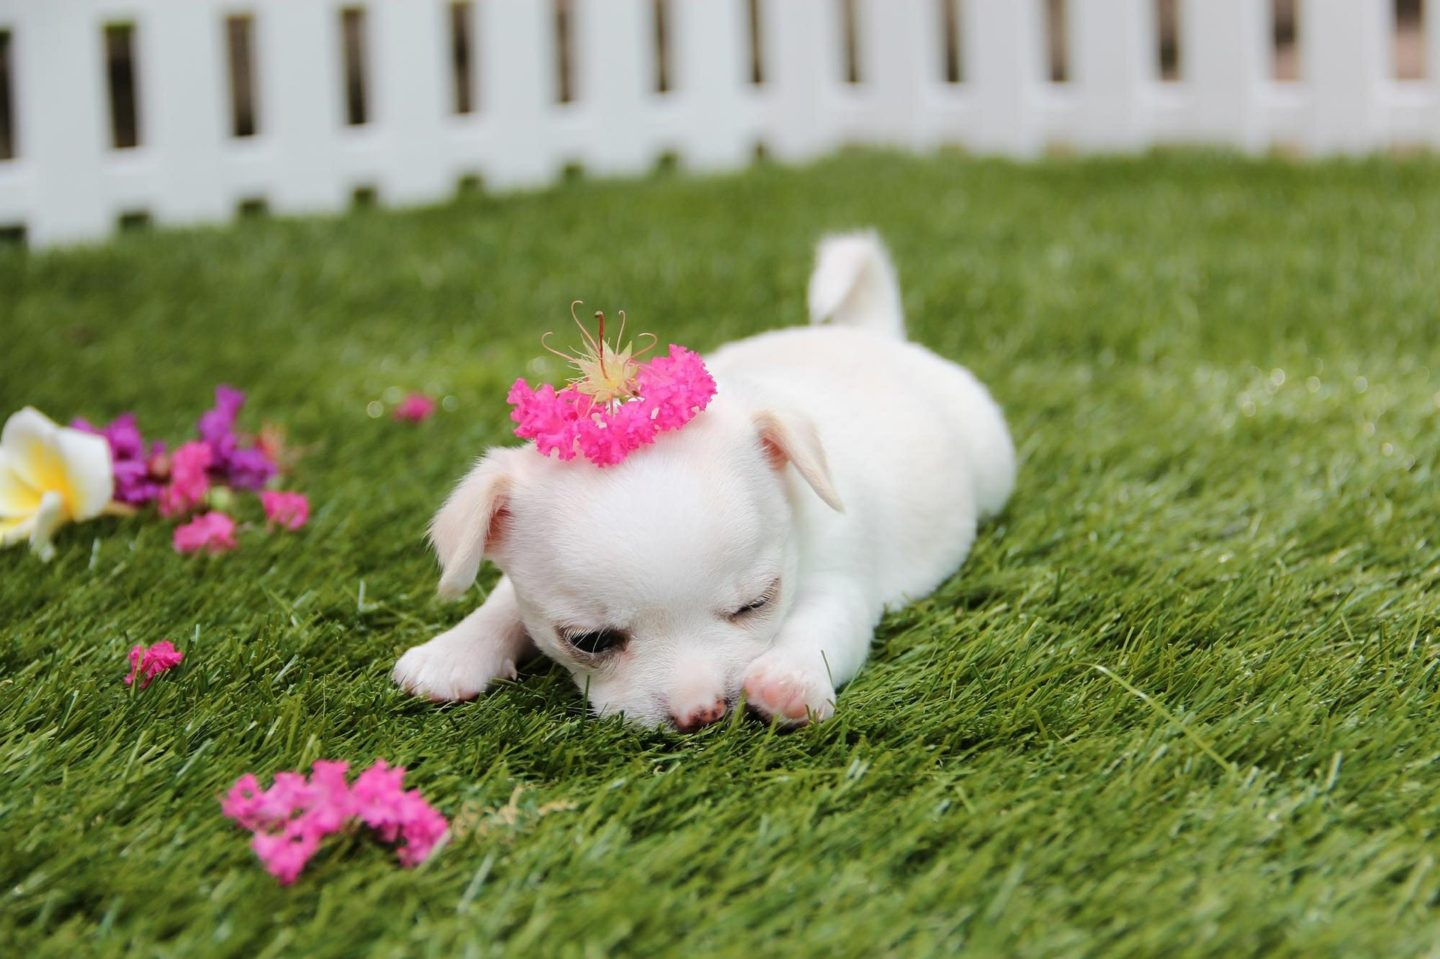 Tea-cup Chihuahuas To Become Illegal Under New Crackdown